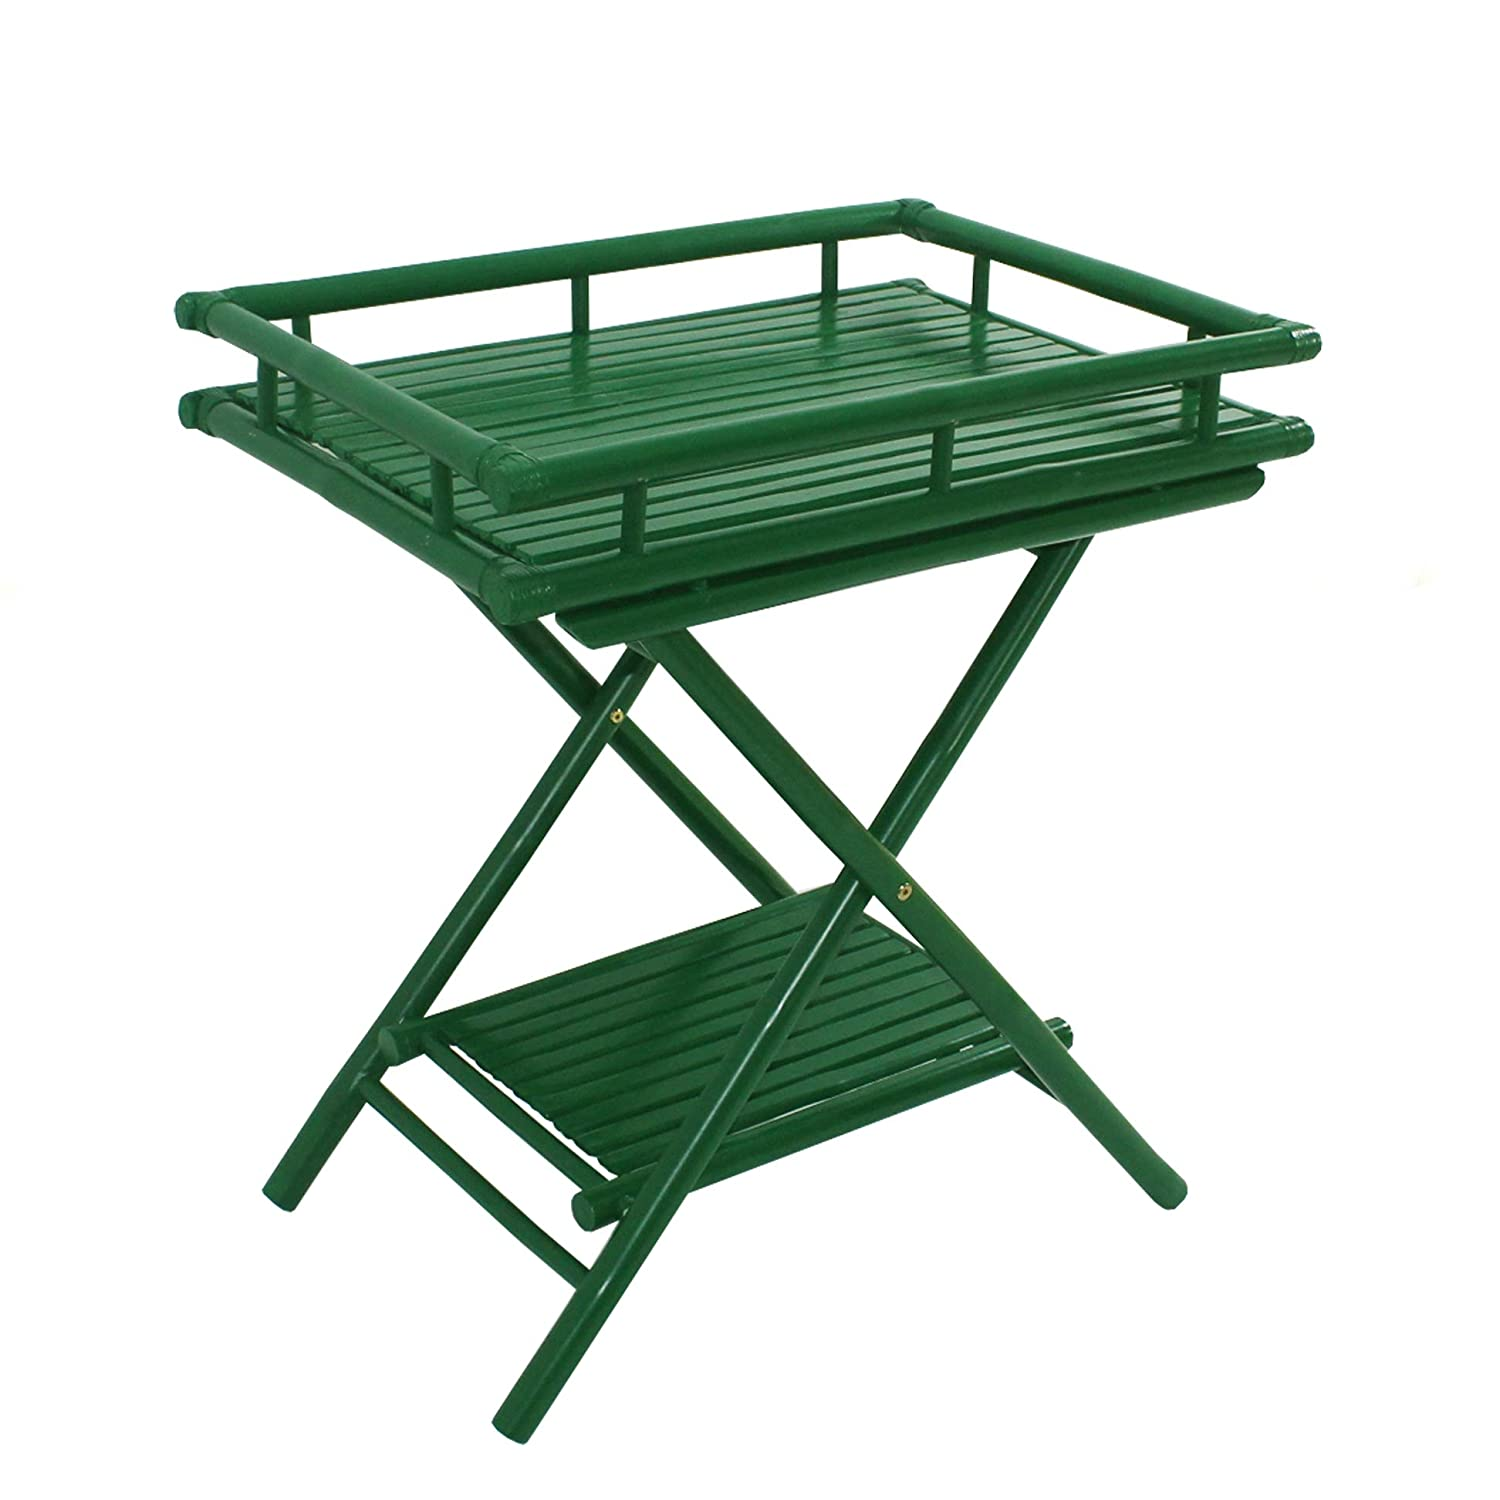 Statra L309G Bamboo Butler Table with Removable Serving Tray Green